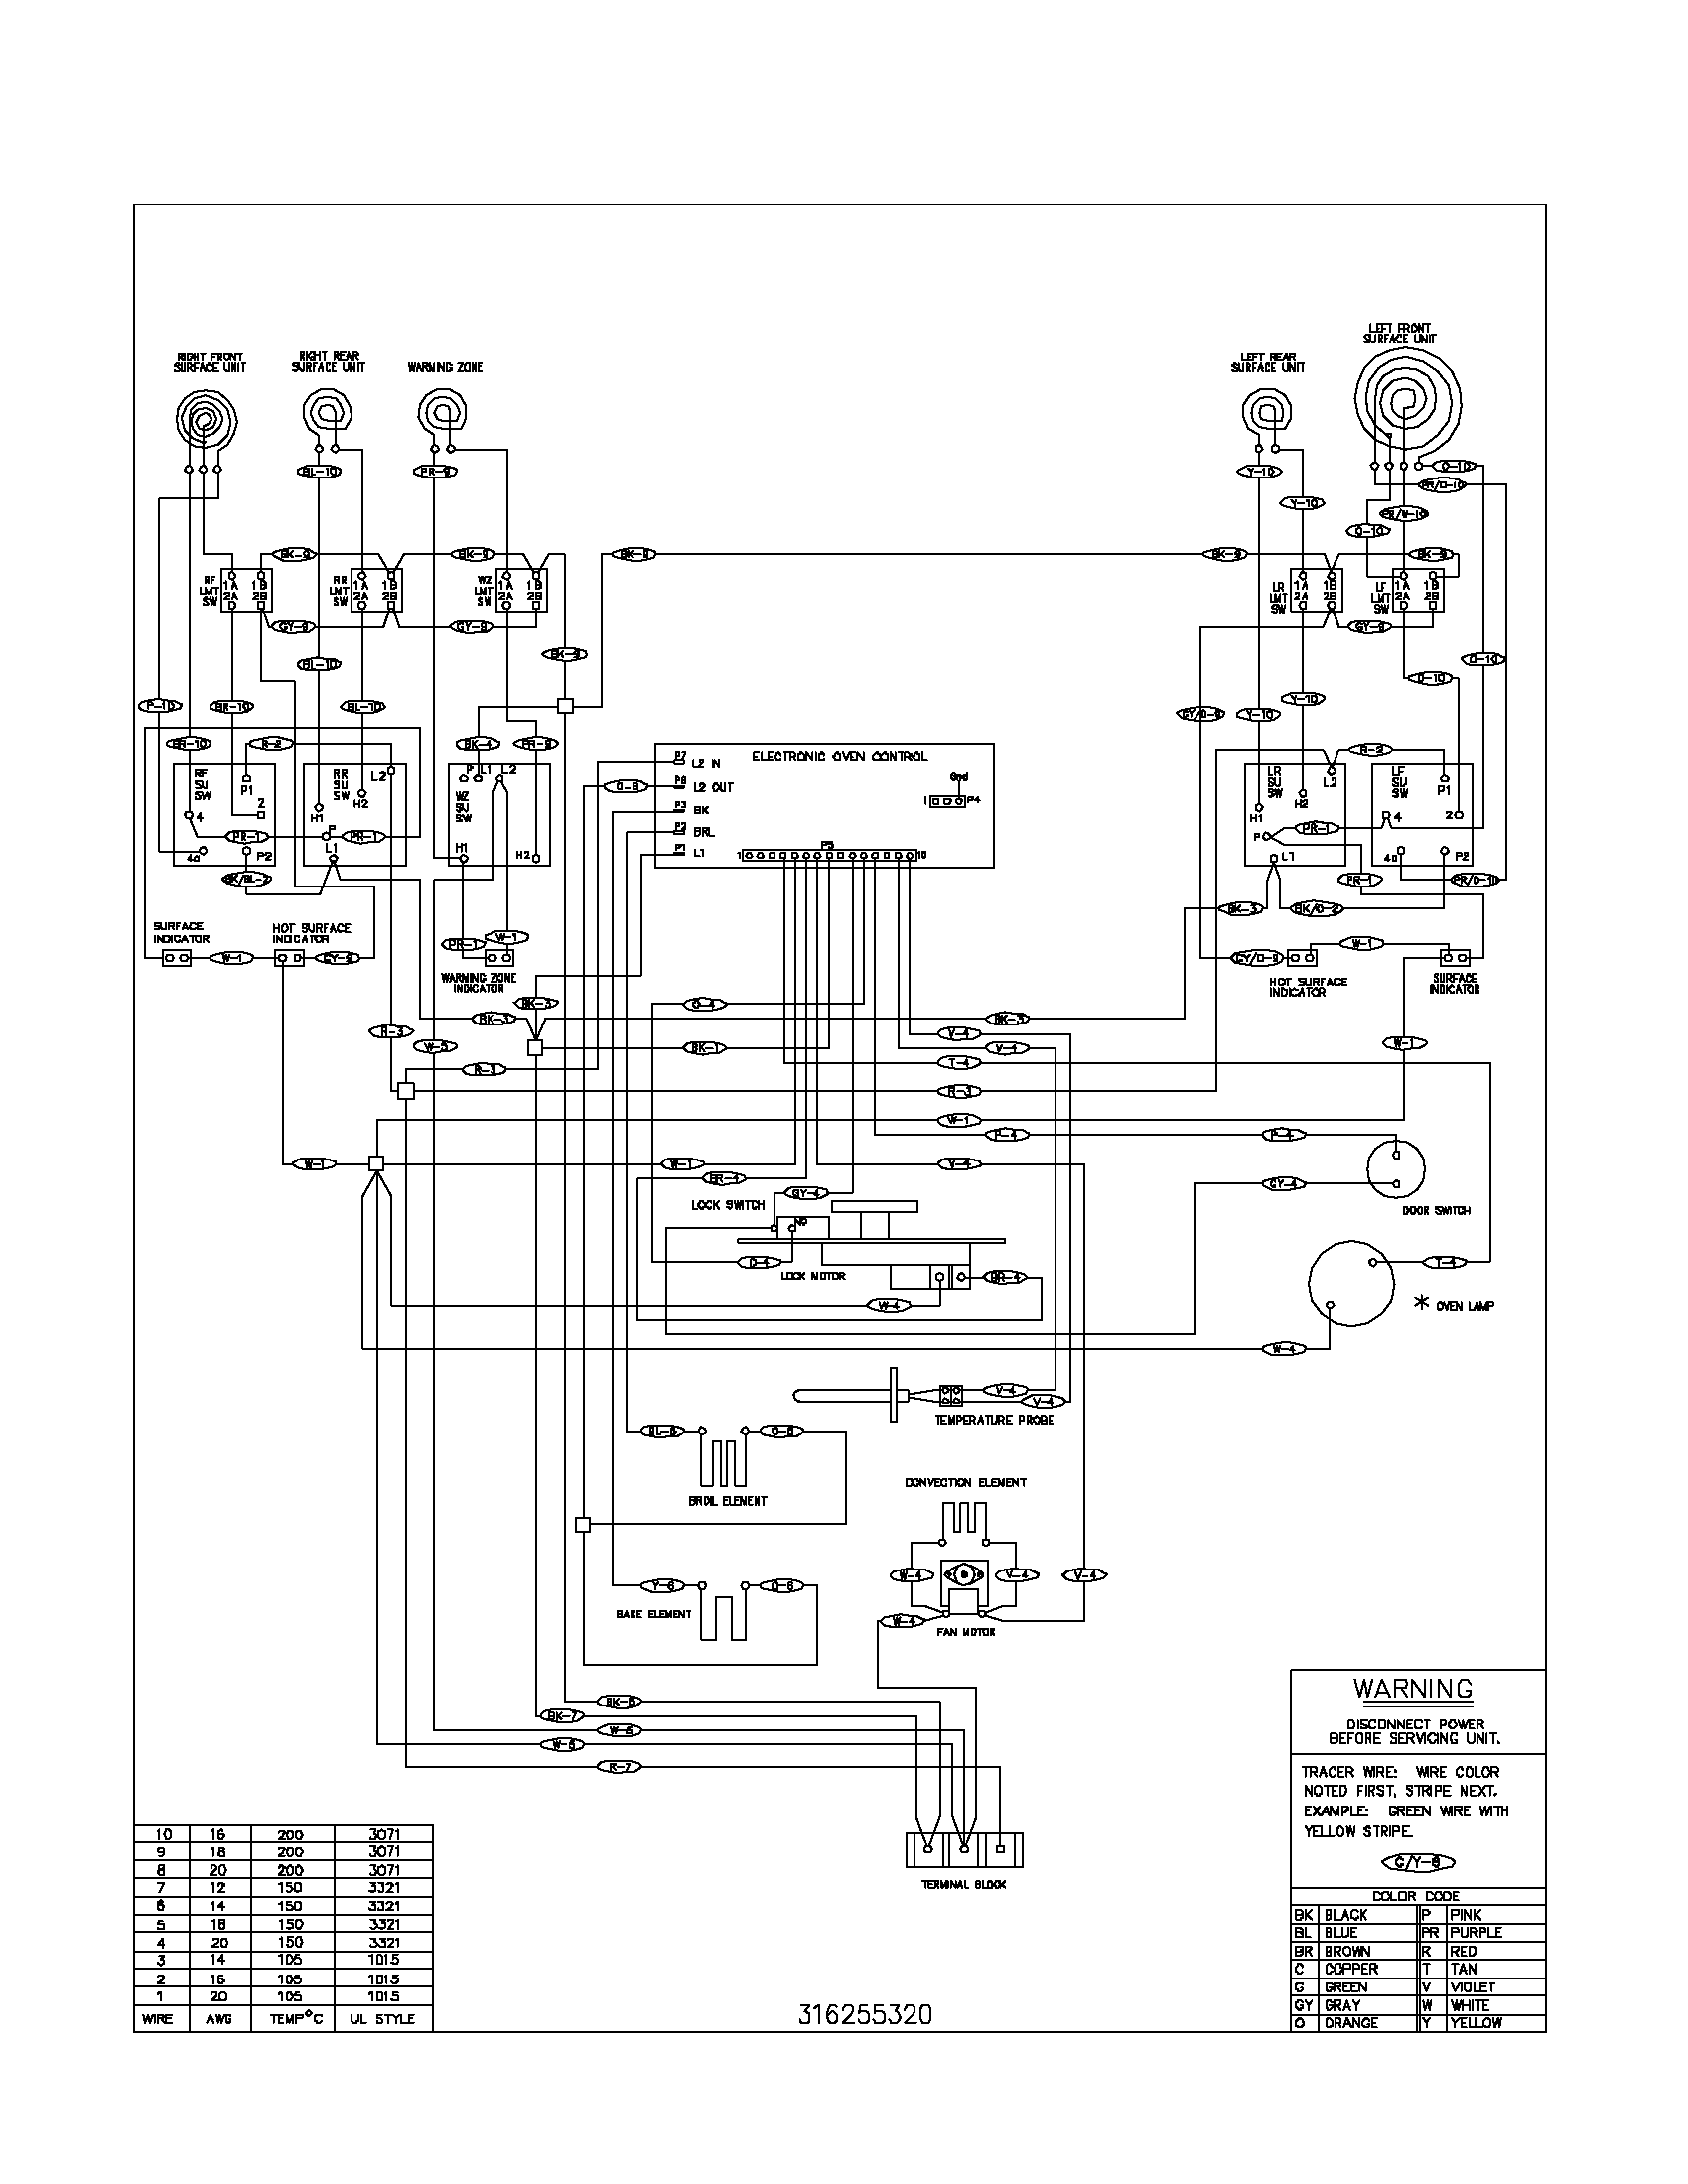 whirlpool dishwasher wiring diagram 1997 ford expedition radio motor get free image